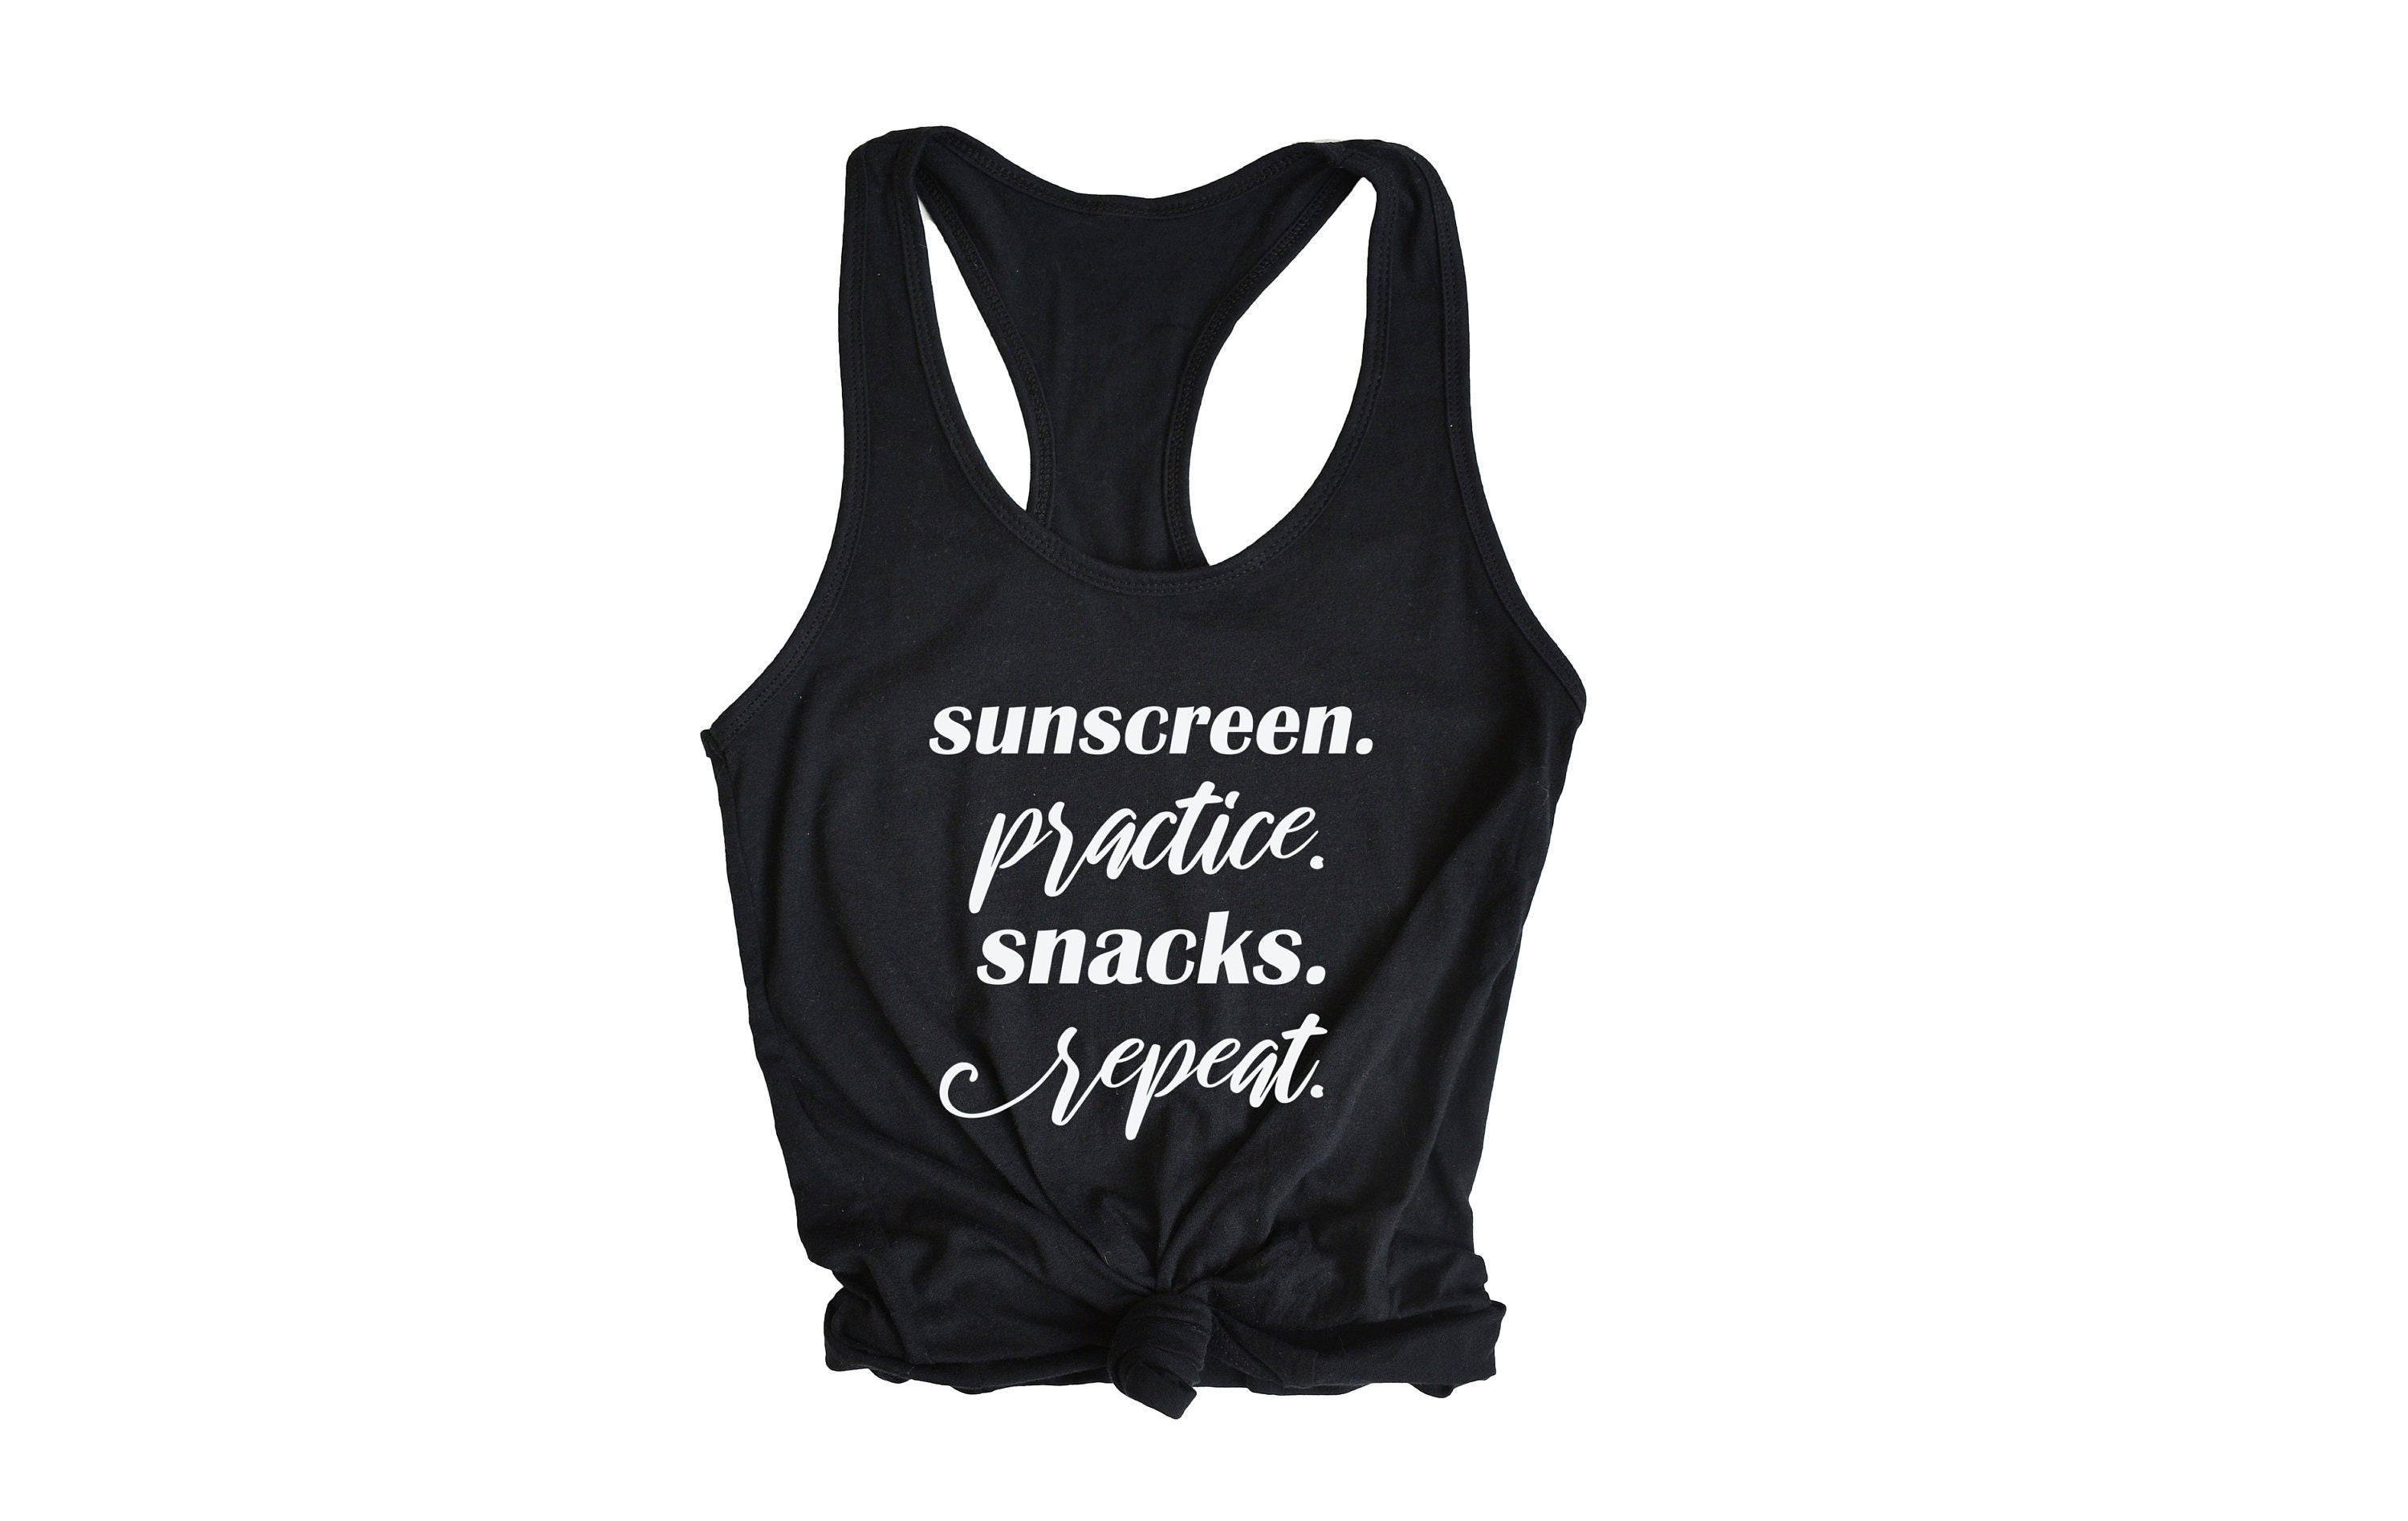 c672c53564 Sunscreen Practice Snacks Repeat Tank Top - Womens Graphic Tank Tops - Tank  Tops for Women- Mom shirts - Shirts for moms